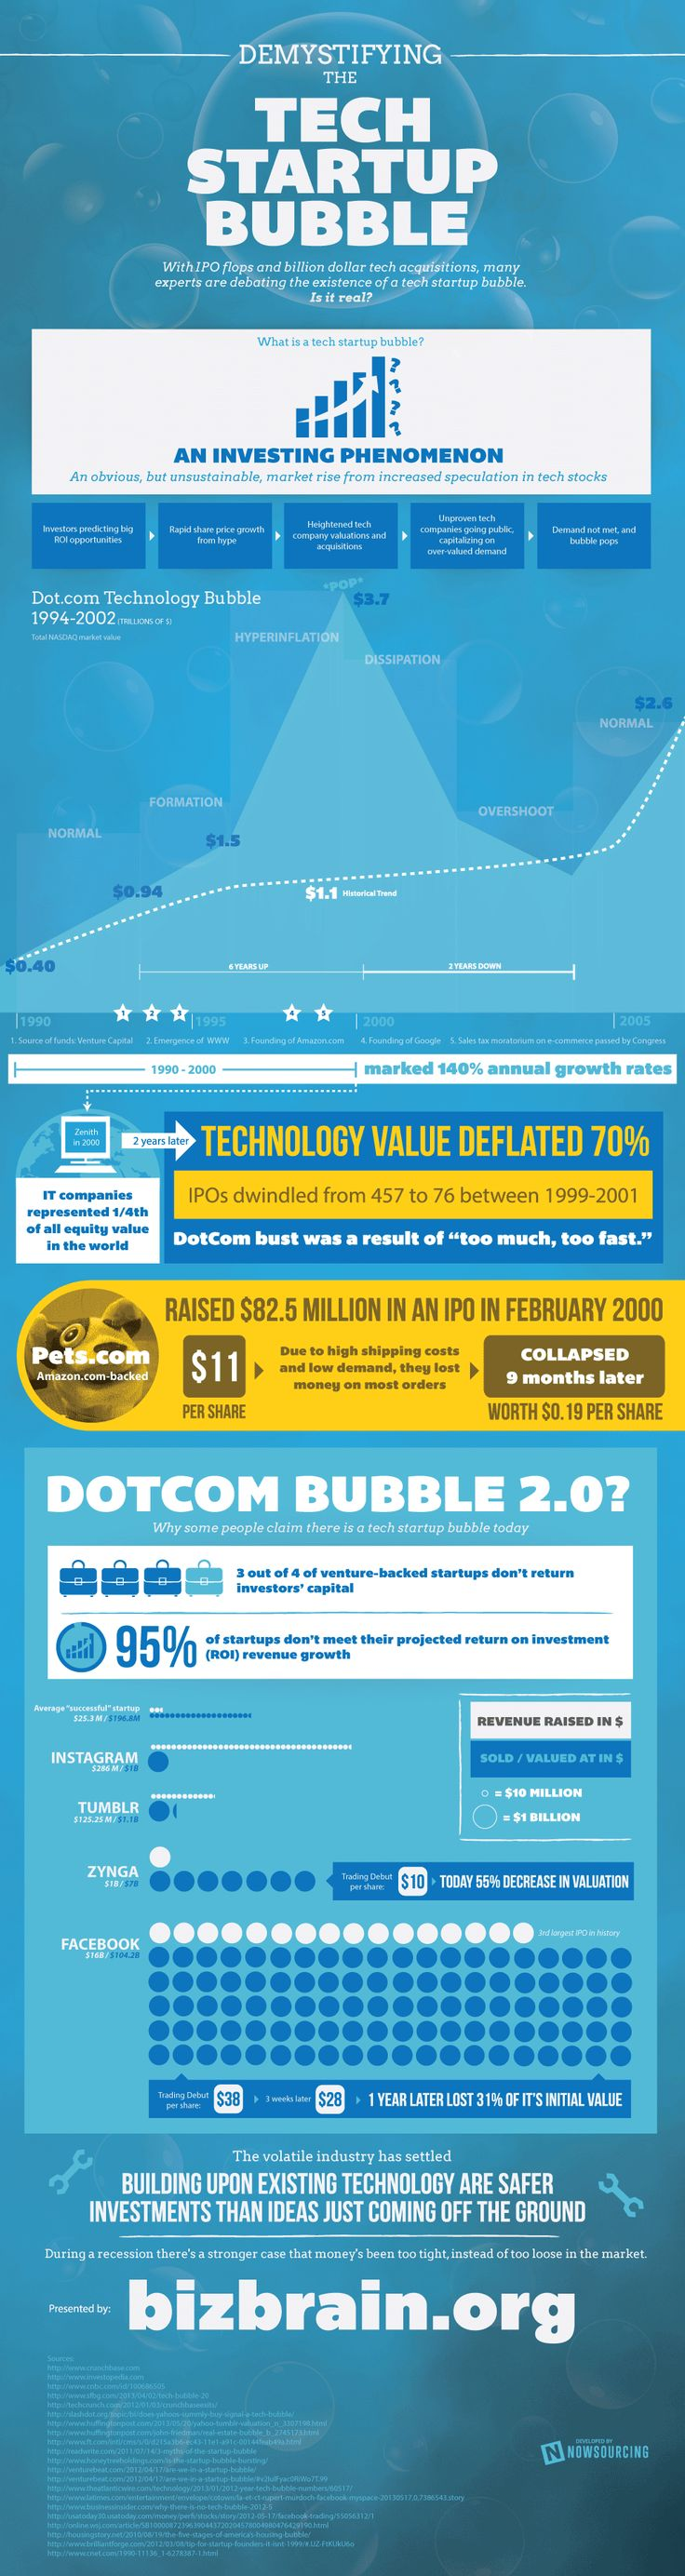 Demystifying the tech startup bubble #infographic